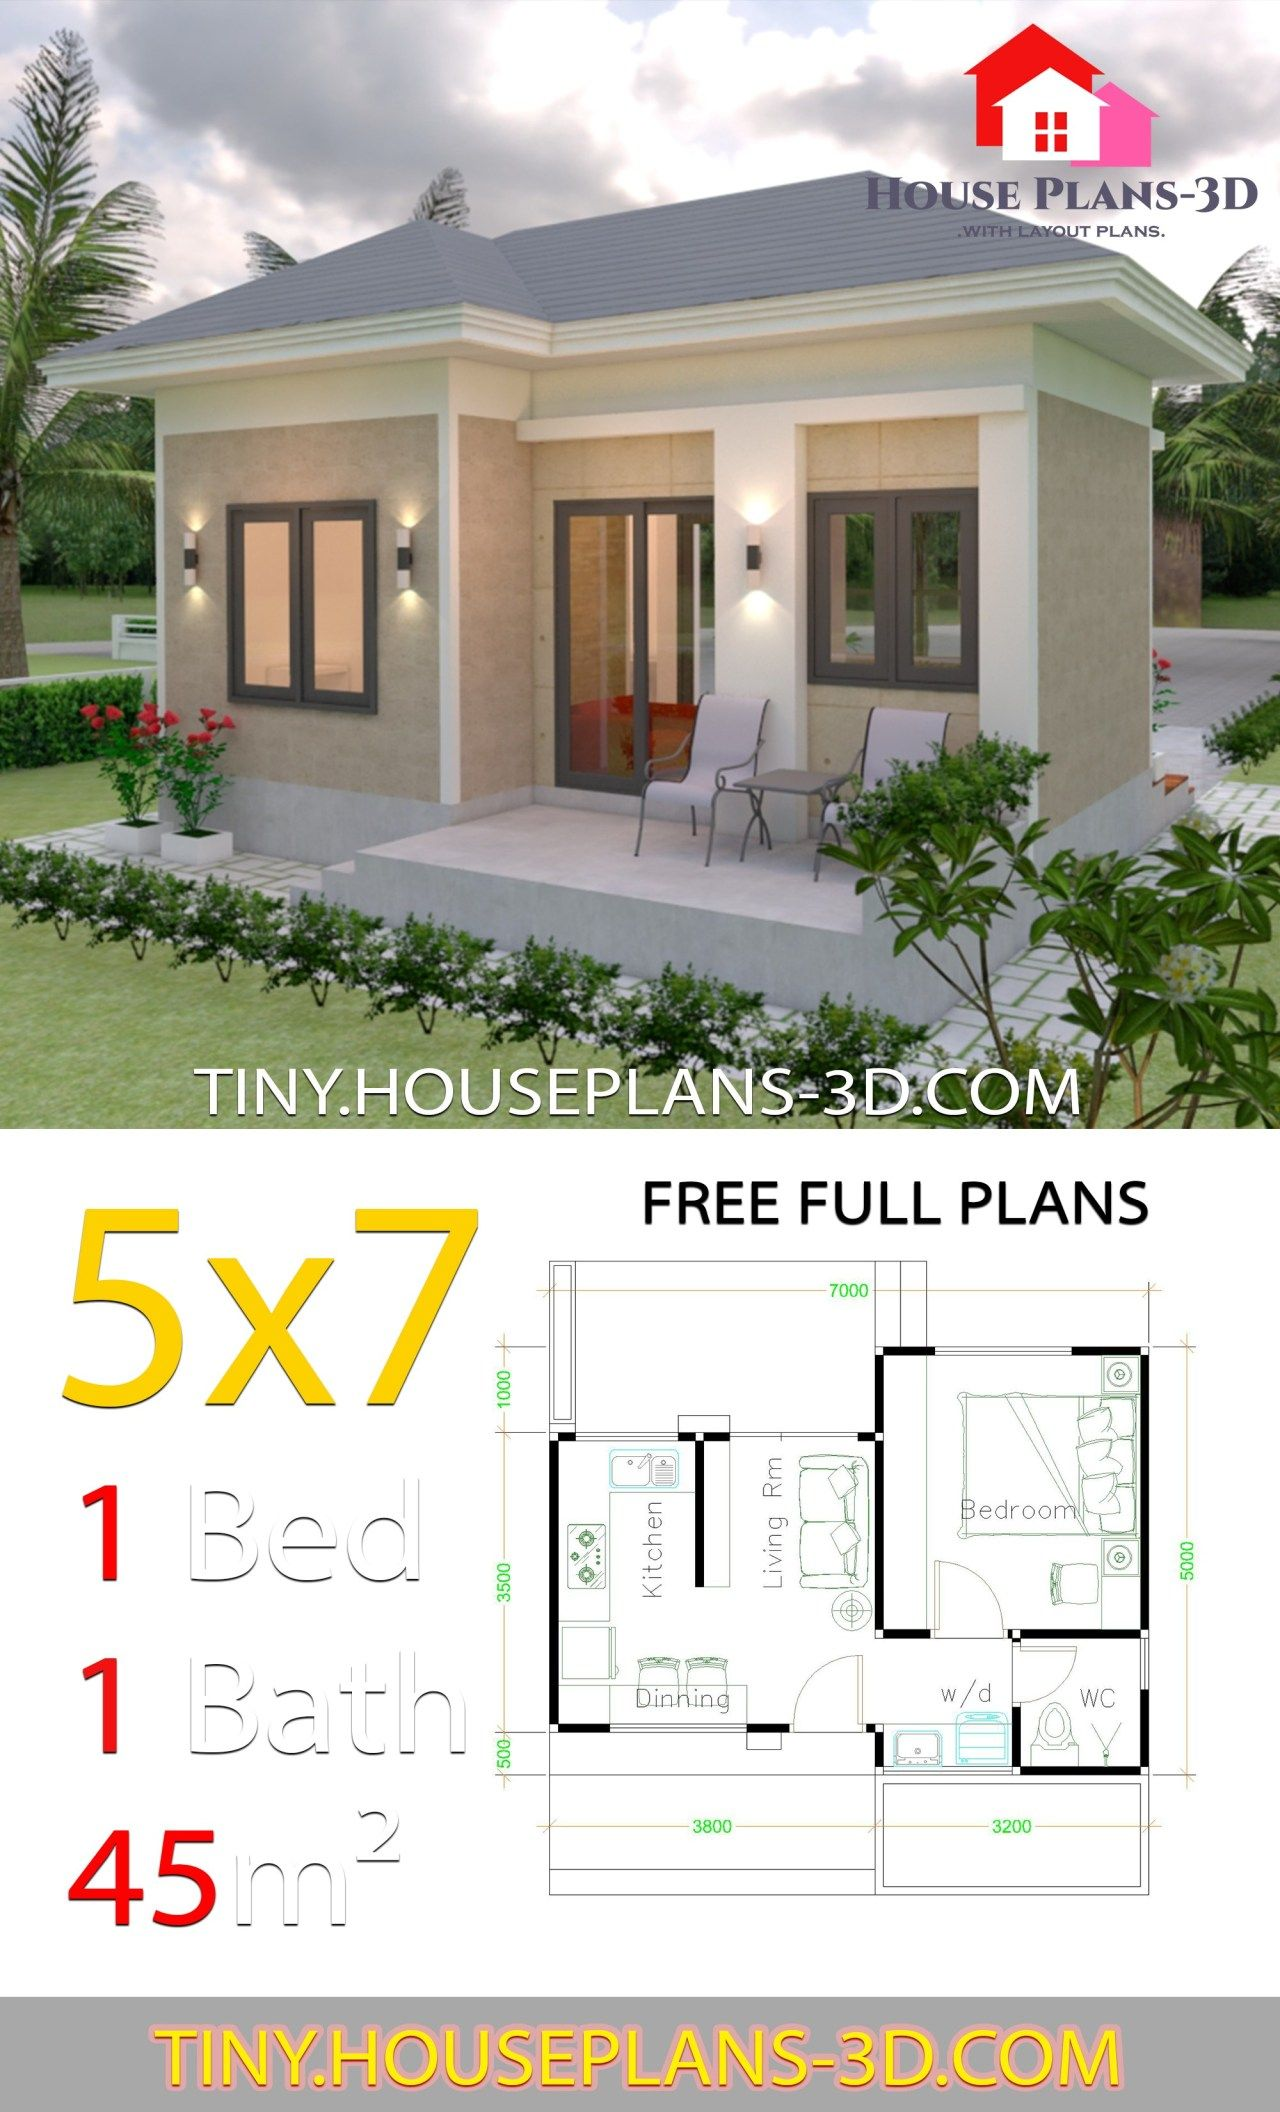 Small House Design Plans 5x7 With One Bedroom Hip Roof Tiny House Plans One Bedroom House House Roof Design Small House Design Plans